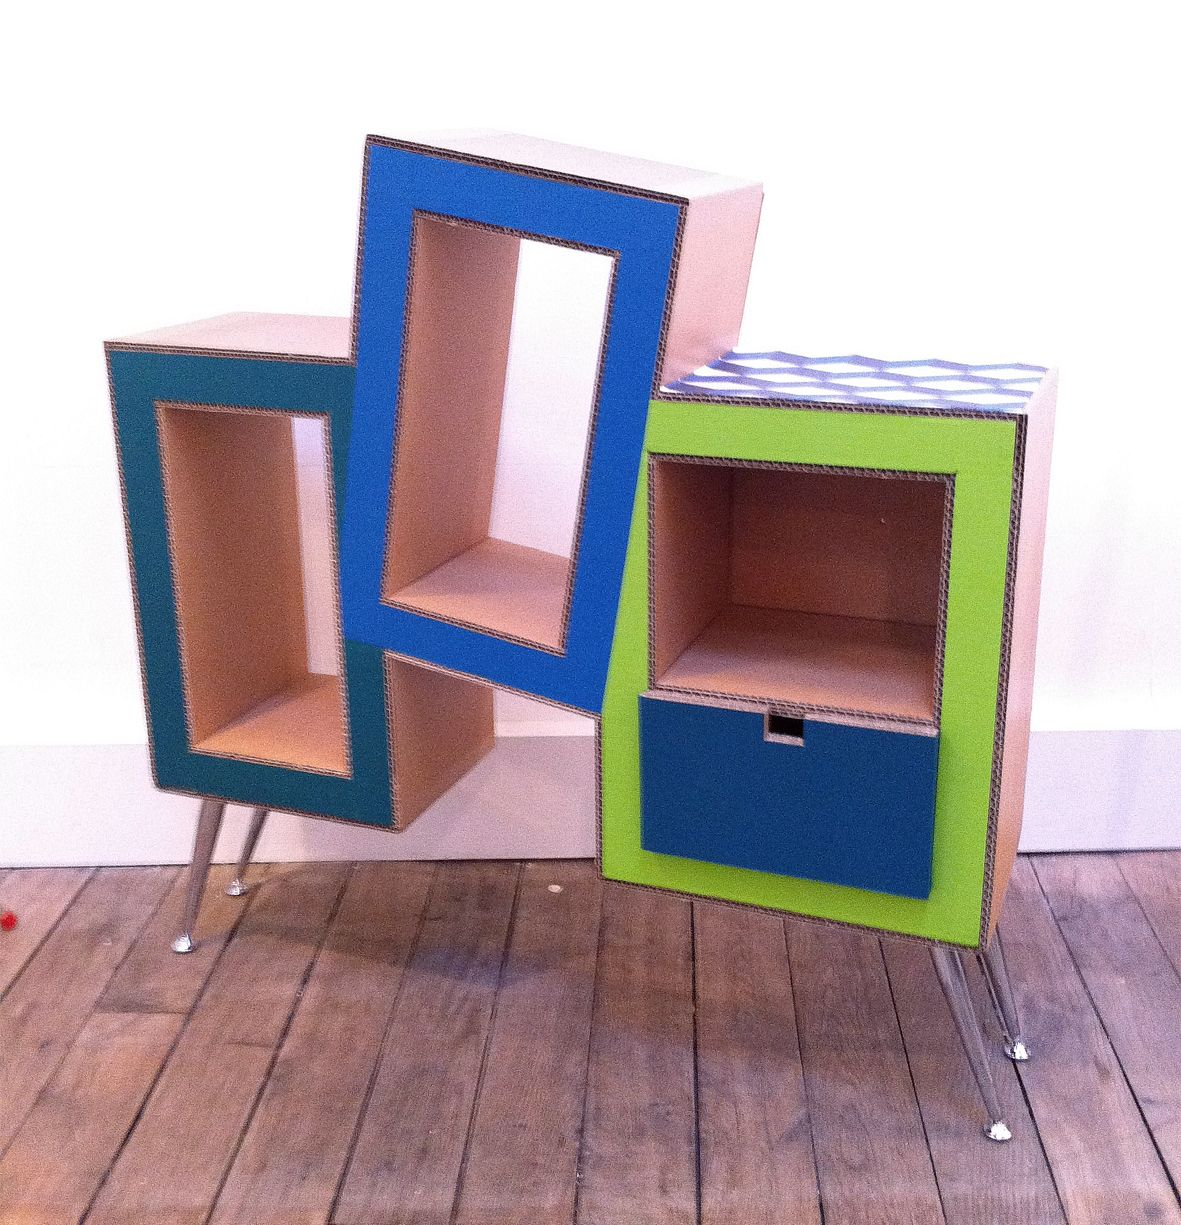 Commode En Carton Commode En Carton 1 Kardus Cardboard Furniture